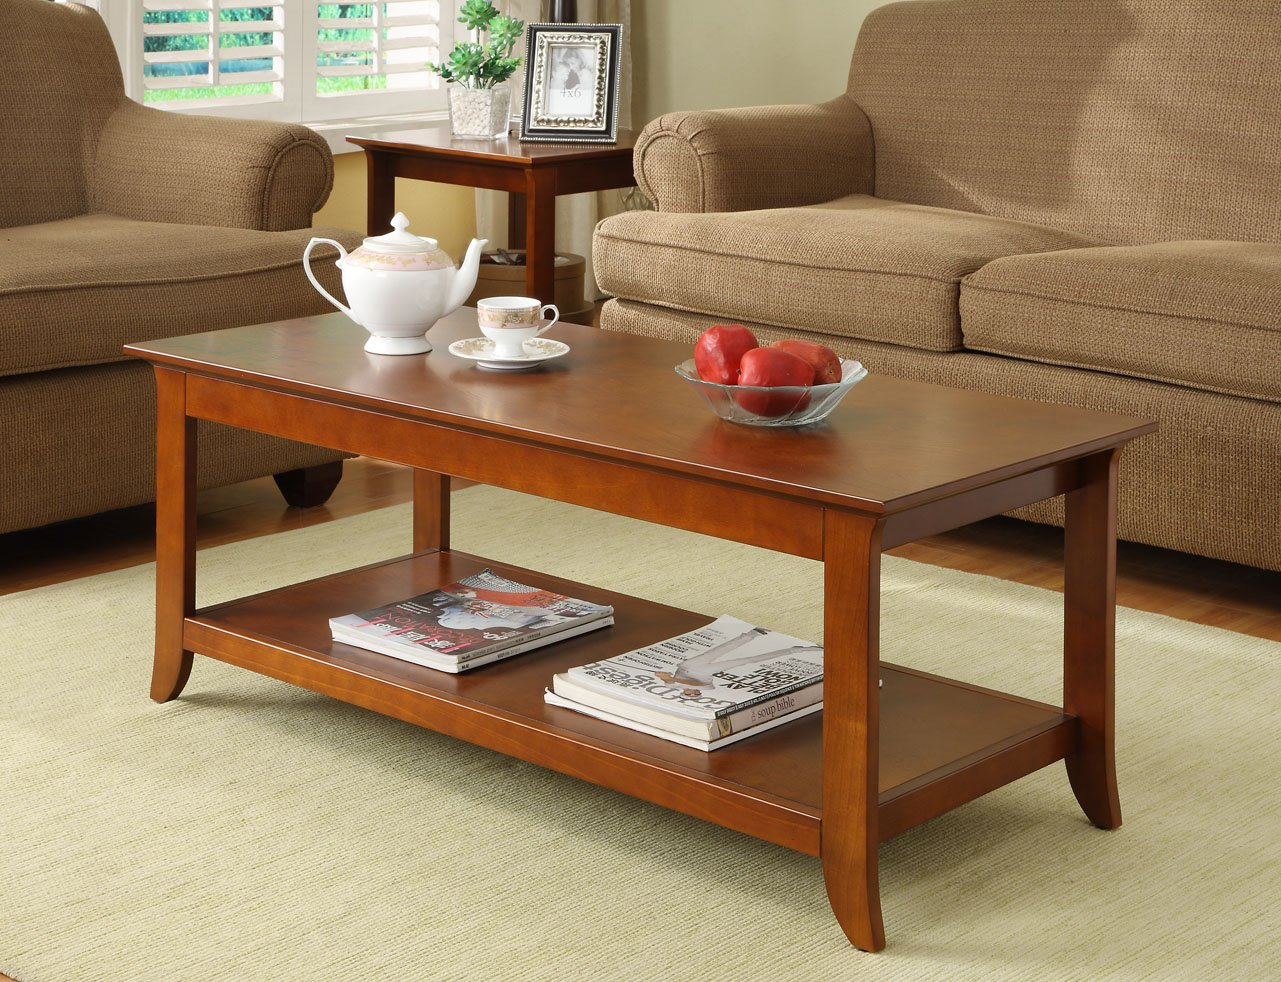 Amazon.com: WES Home Furniture Coffee Table, CRE Series, 20 By 46 By  20 Inch, Walnut Finish: Kitchen U0026 Dining